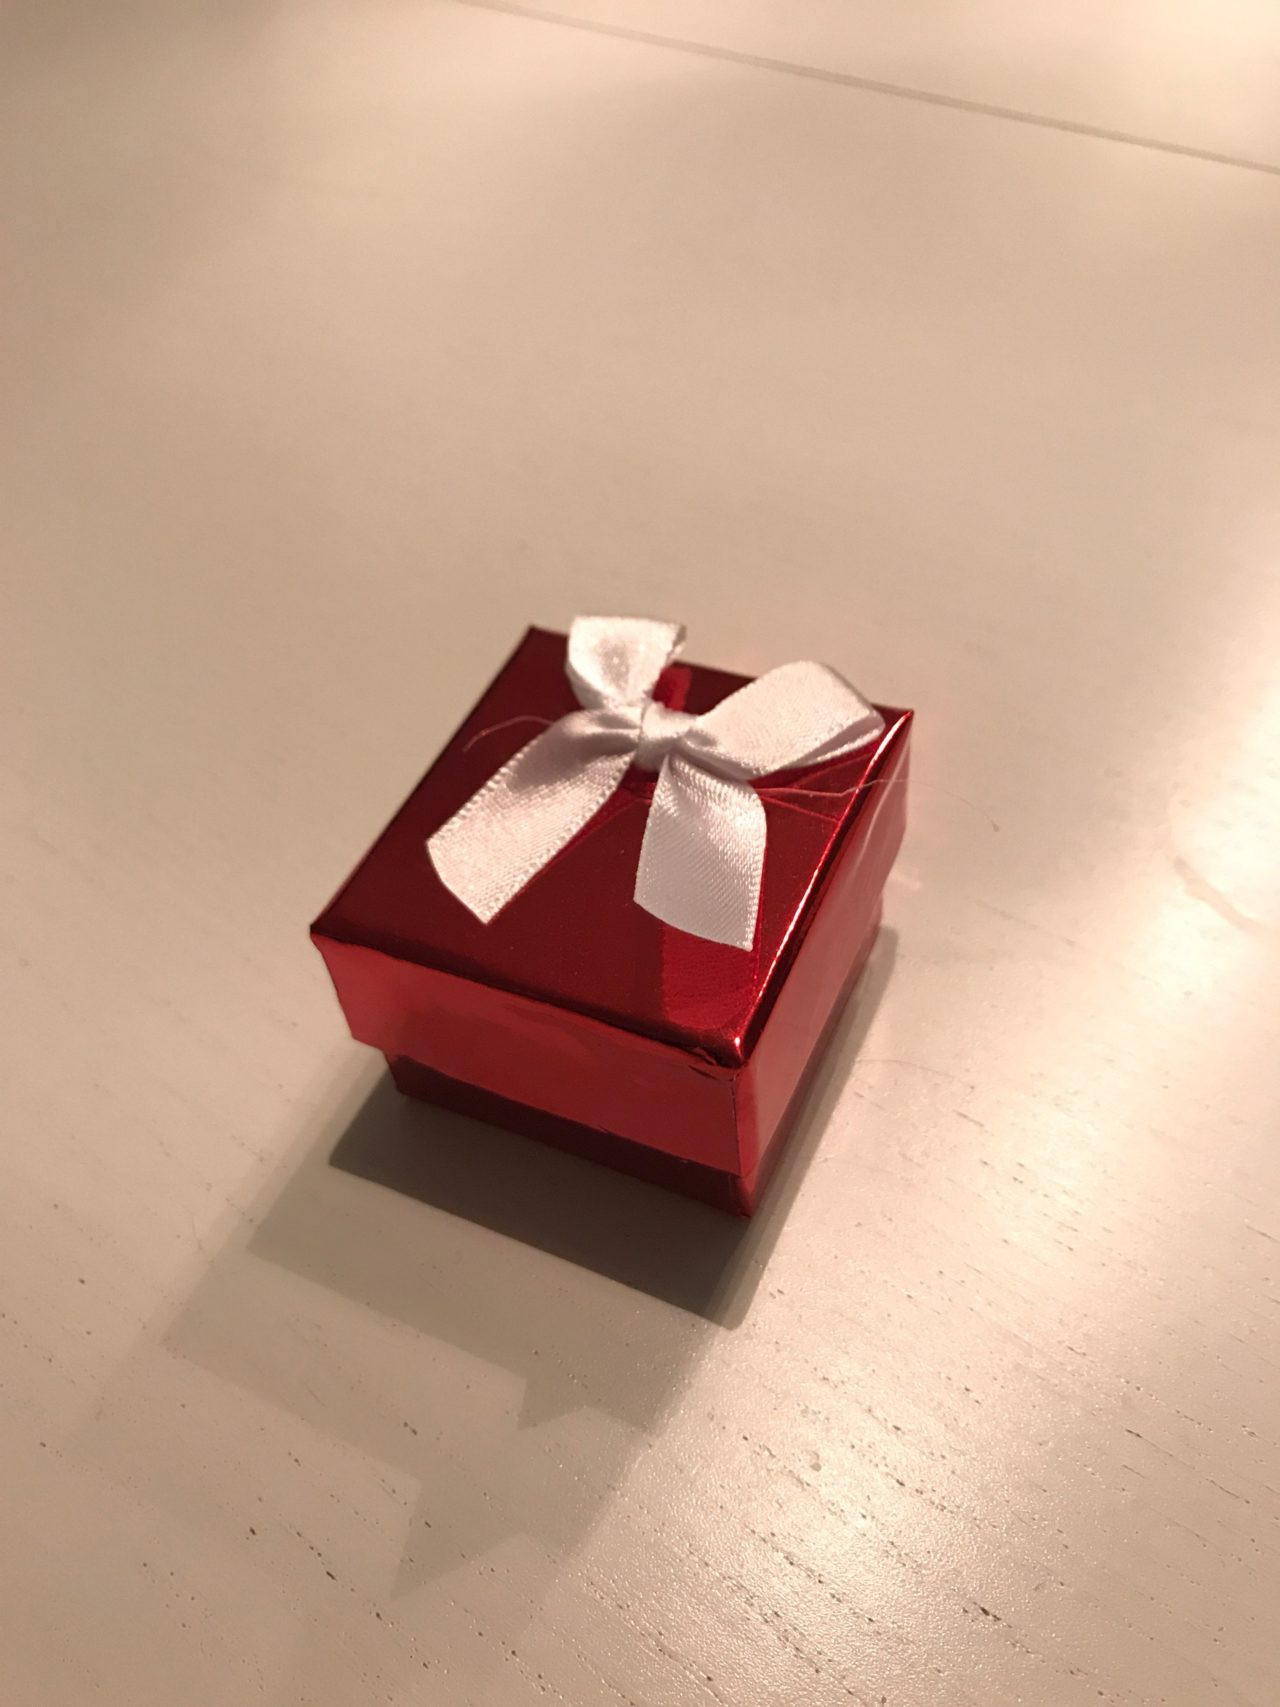 Small Red Gift Box With A White Bow